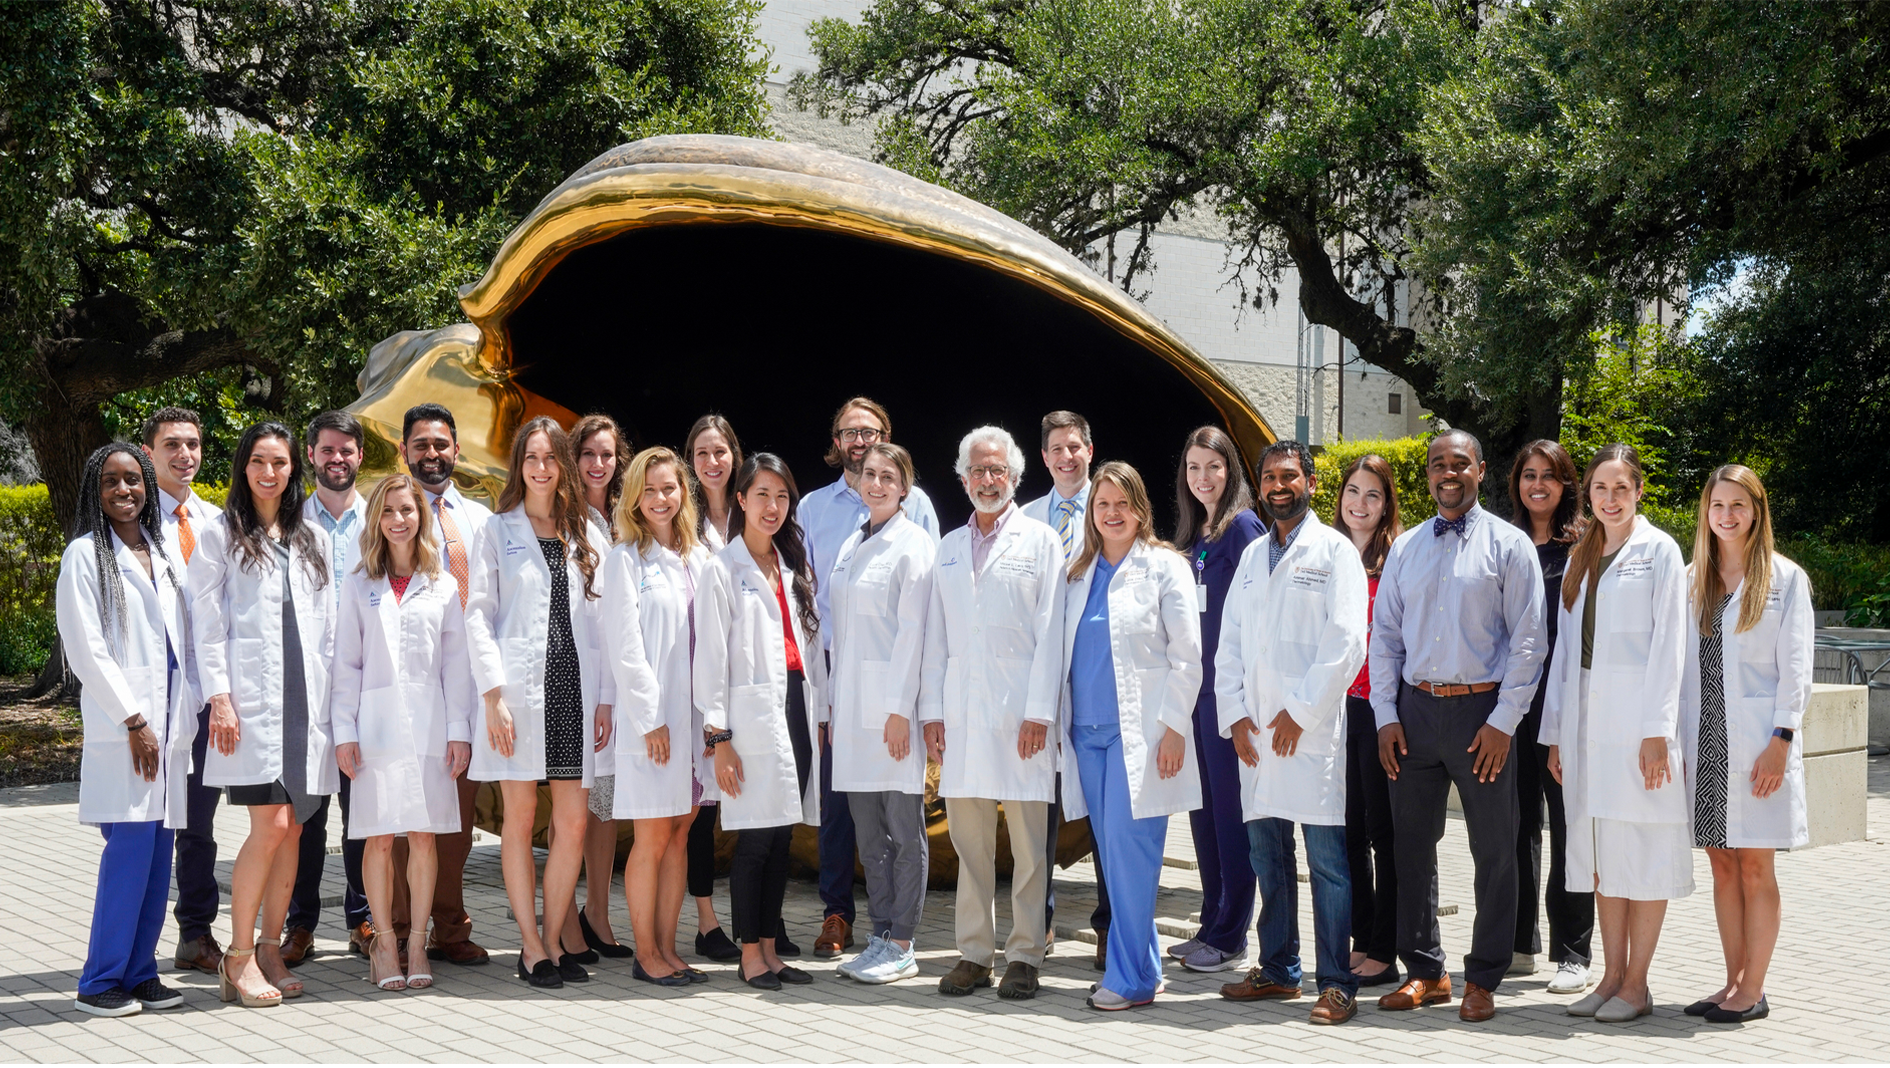 Members of the Dermatology Residency in a group photo.